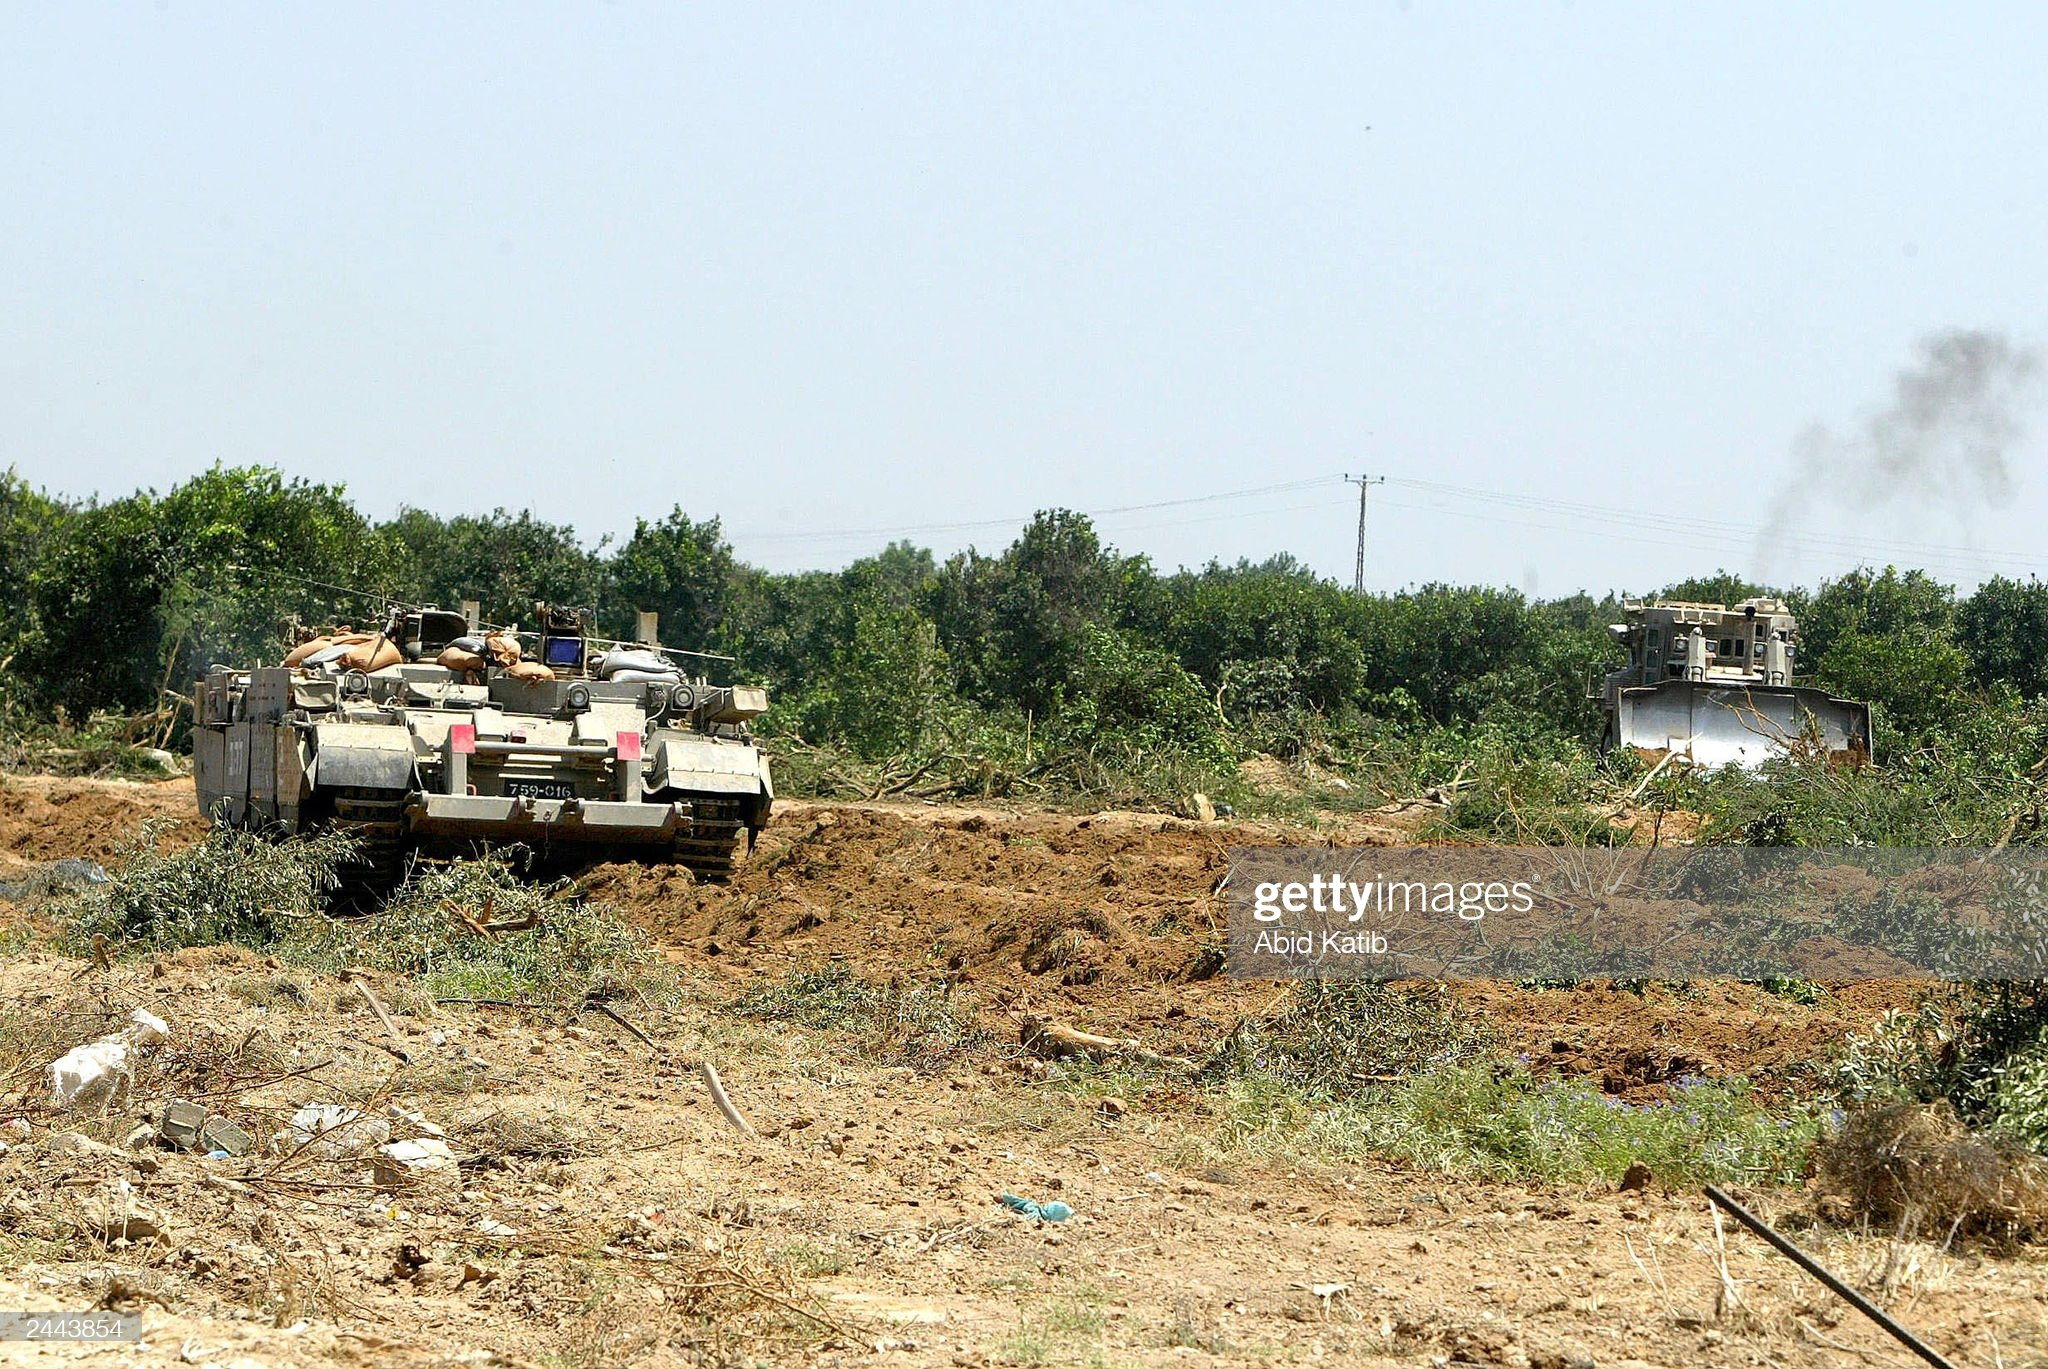 https://media.gettyimages.com/photos/israeli-tanks-and-bulldozers-destroy-palestinian-orange-groves-august-picture-id2443854?s=2048x2048